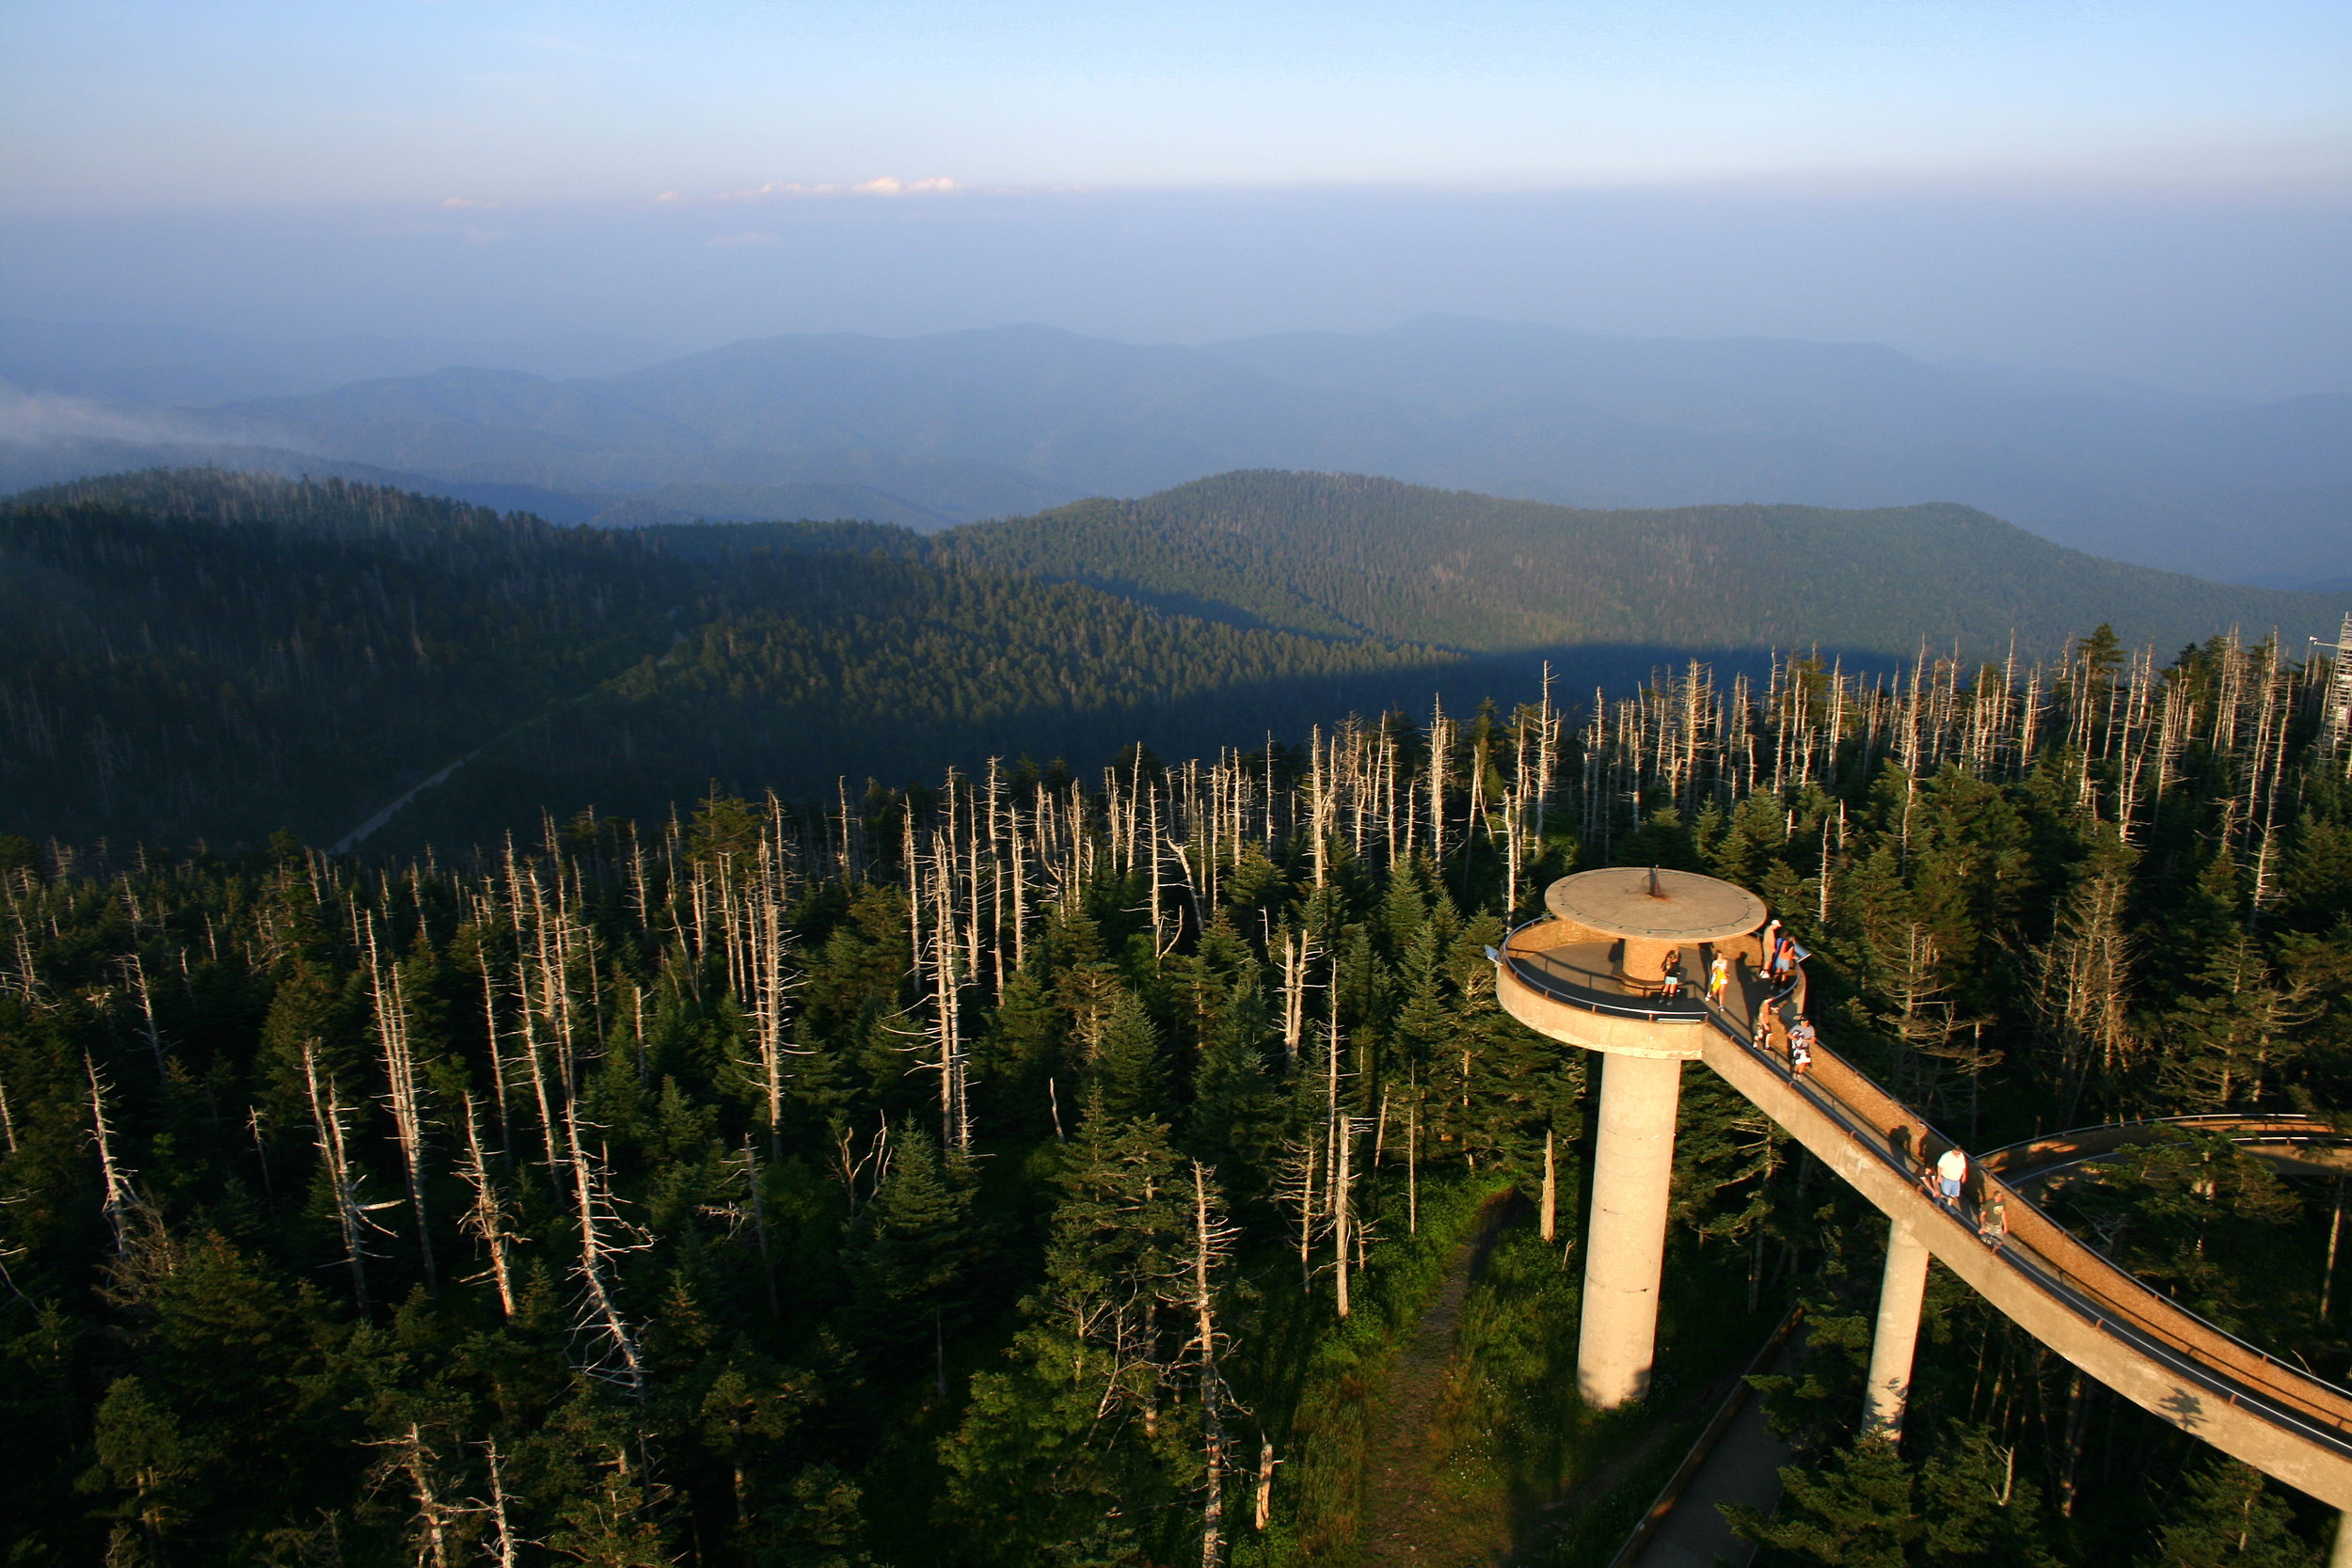 Clingmans Dome - At 6,643 ft, Clingmans Dome is the highest point in Tennessee and has also experienced a large die-off of Fraser Fir, the result of the Balsam woolly adelgid. We will find out what the next succession forest might look like. Originally called Smoky Dome, the name was changed to honor Thomas Lanier Clingman, US Senator and Confederate General who accurately measured the peak with a barometer.The peak is often shrouded in fog and receives 84 inches of rain each year yet the temperature has never been recorded over 80 degrees. The two naturalists guiding this hike will take us out to Andrews Bald, an incredible mountain-top meadow,and along the Spruce-Fir Nature Trail.